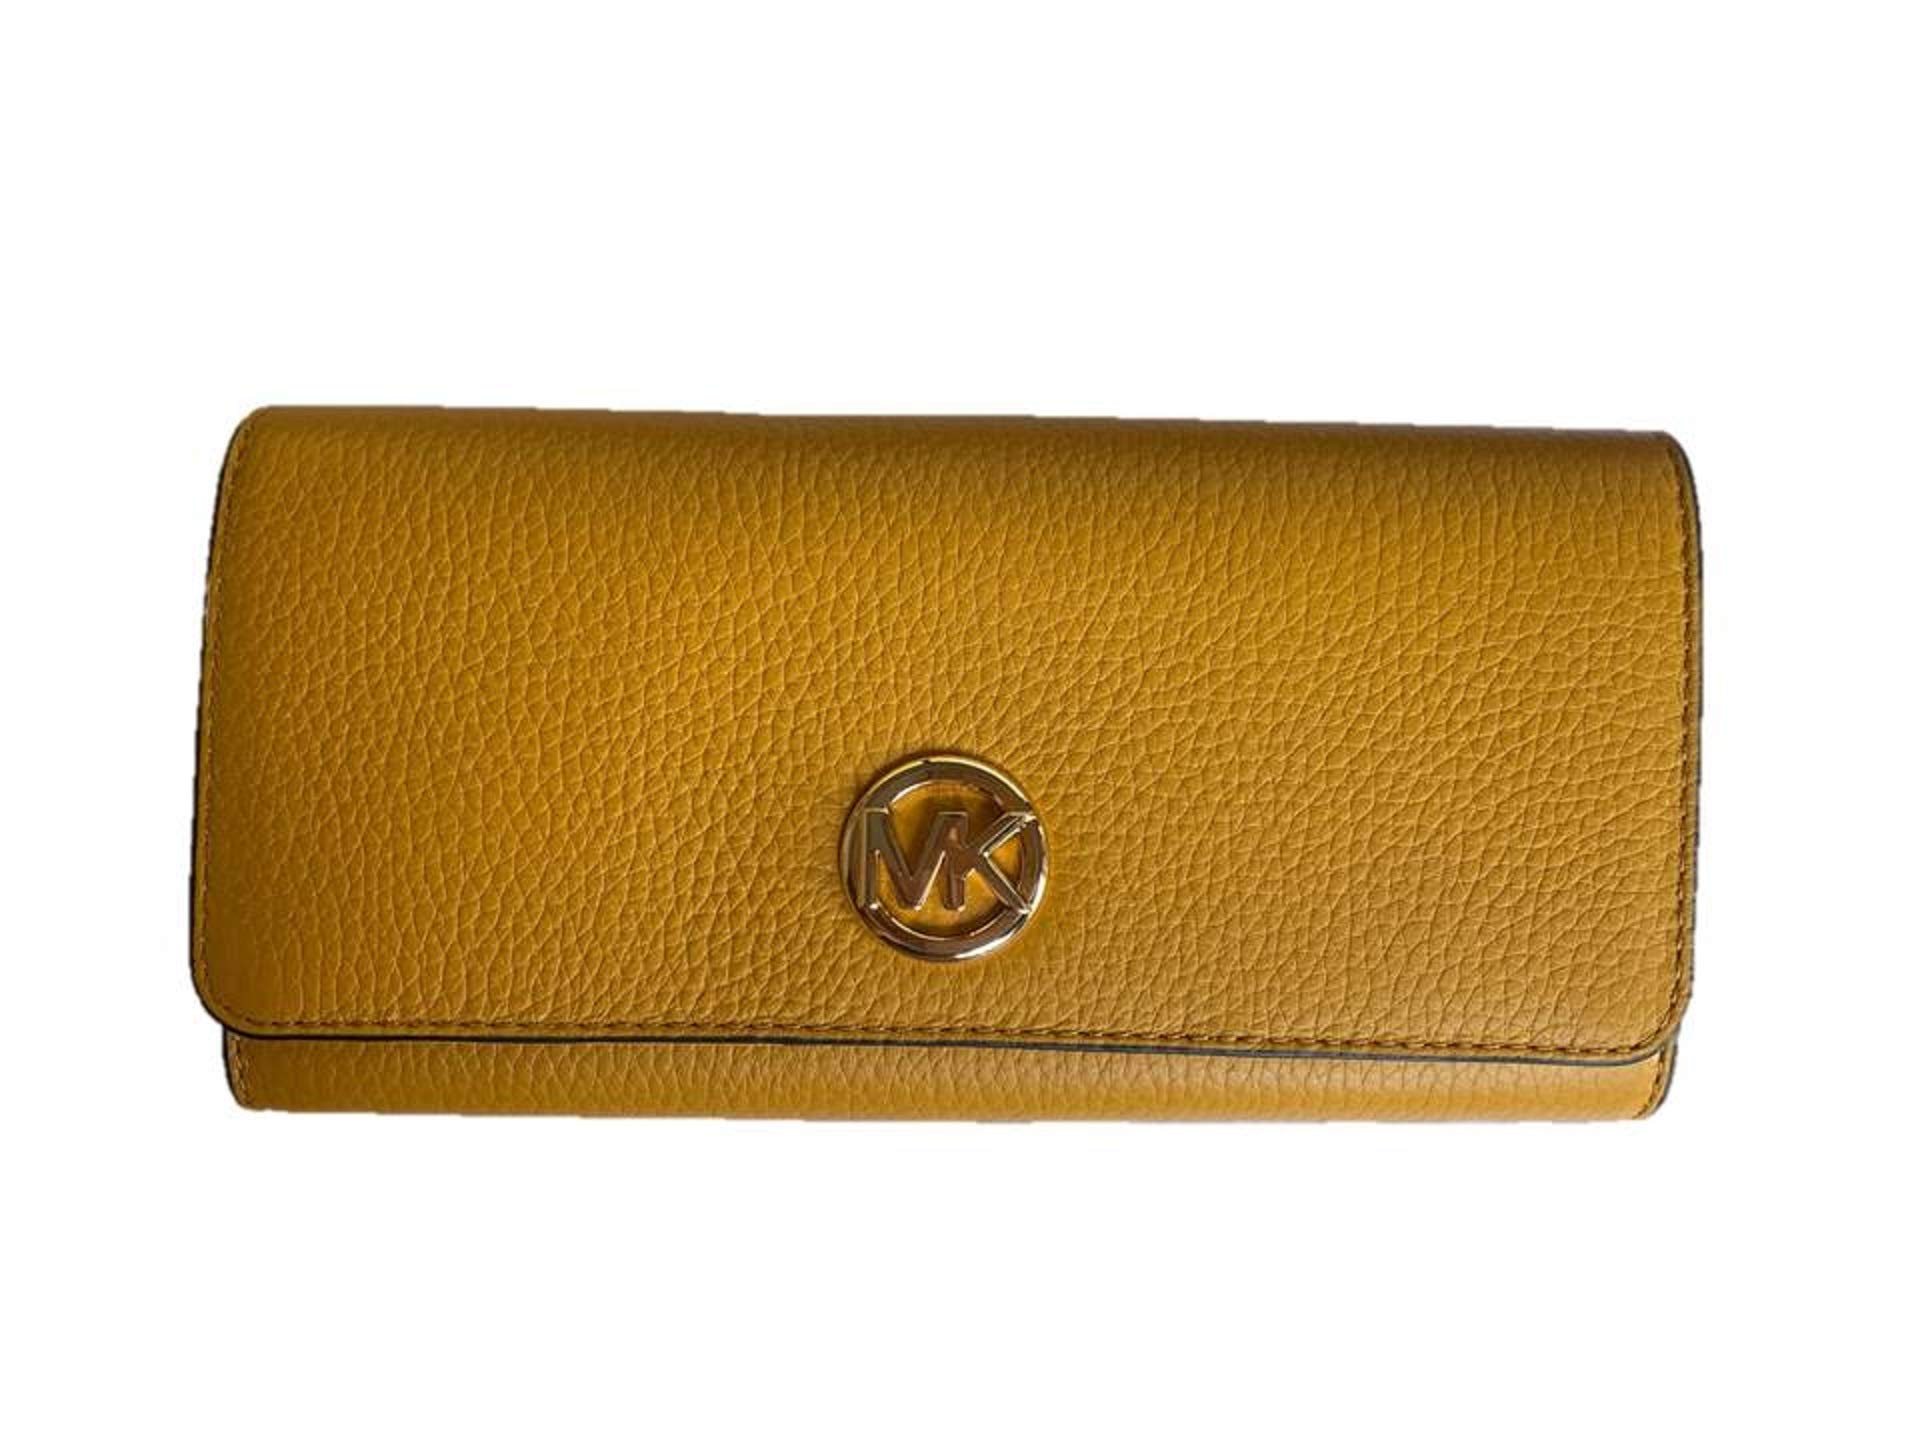 Michael Kors Fulton Flap Continental Leather Wallet - Marigold